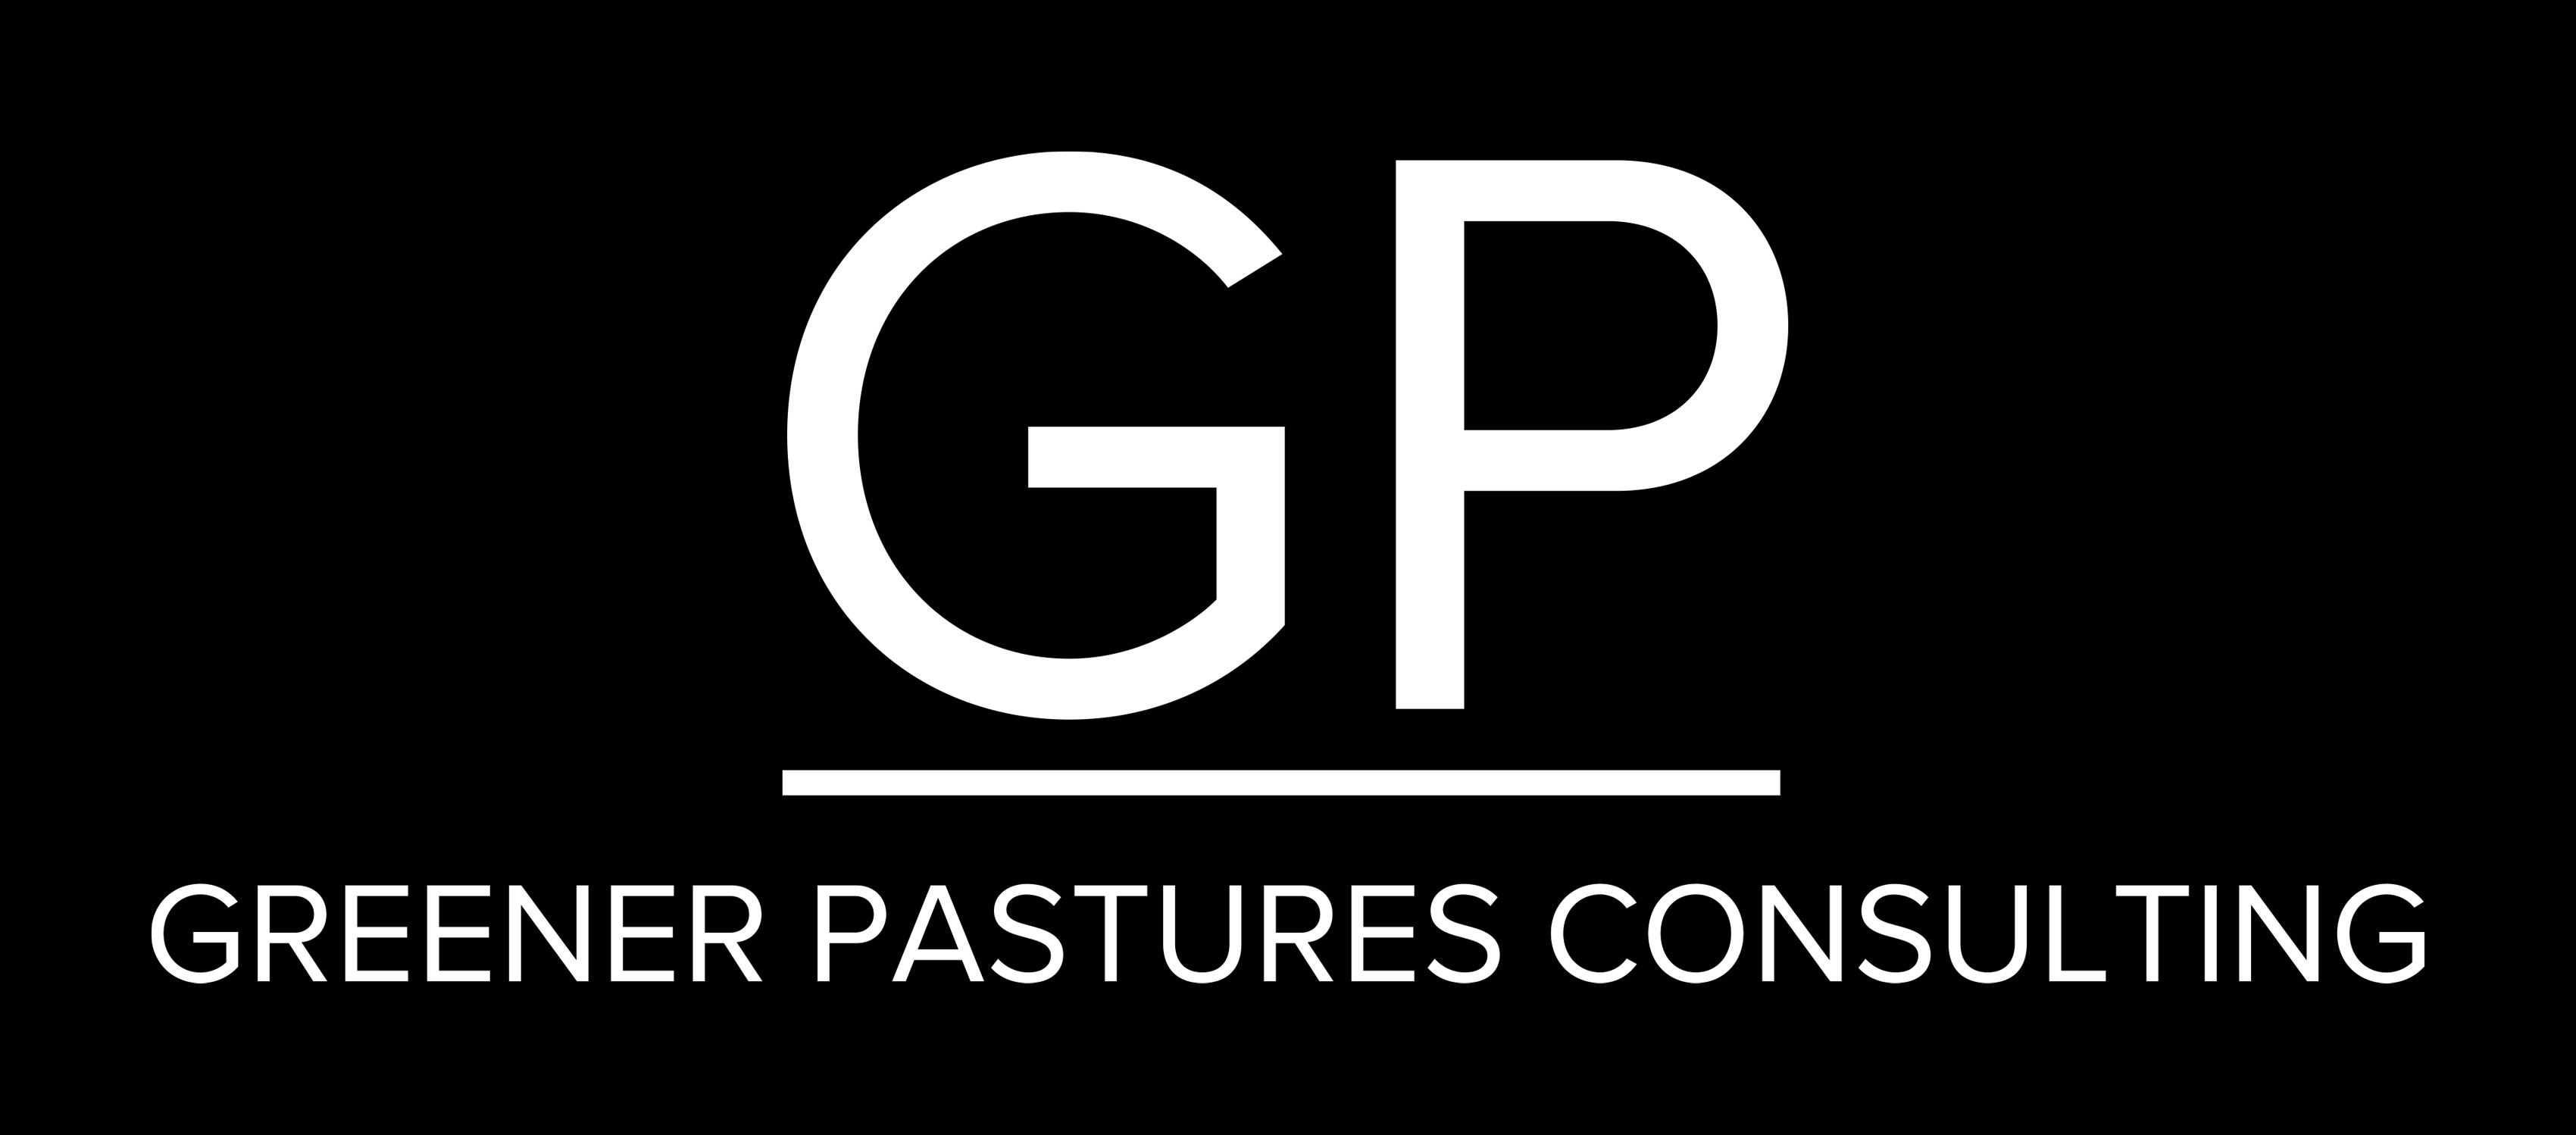 Greener Pastures Consulting, LLC